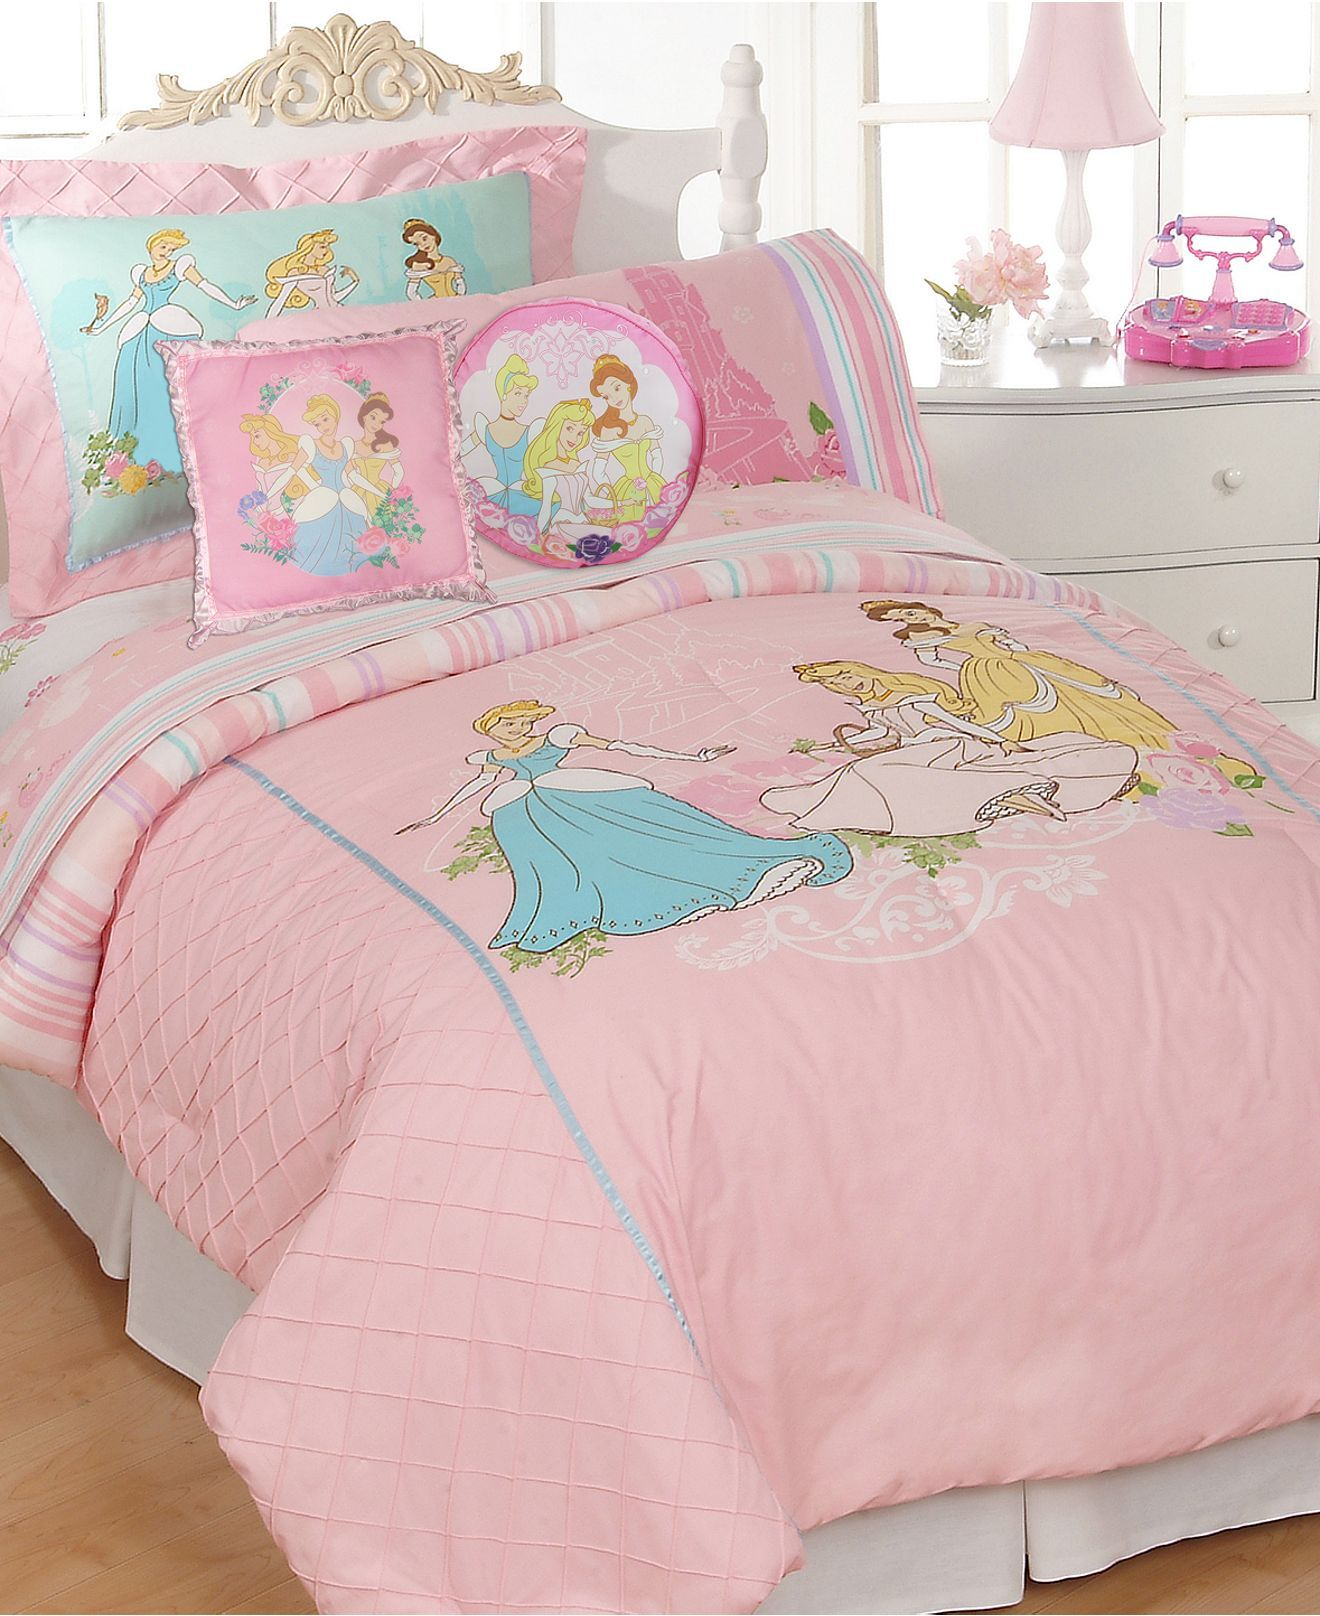 Disney bedding kids disney princesses comforter sets bed in a bag bed s